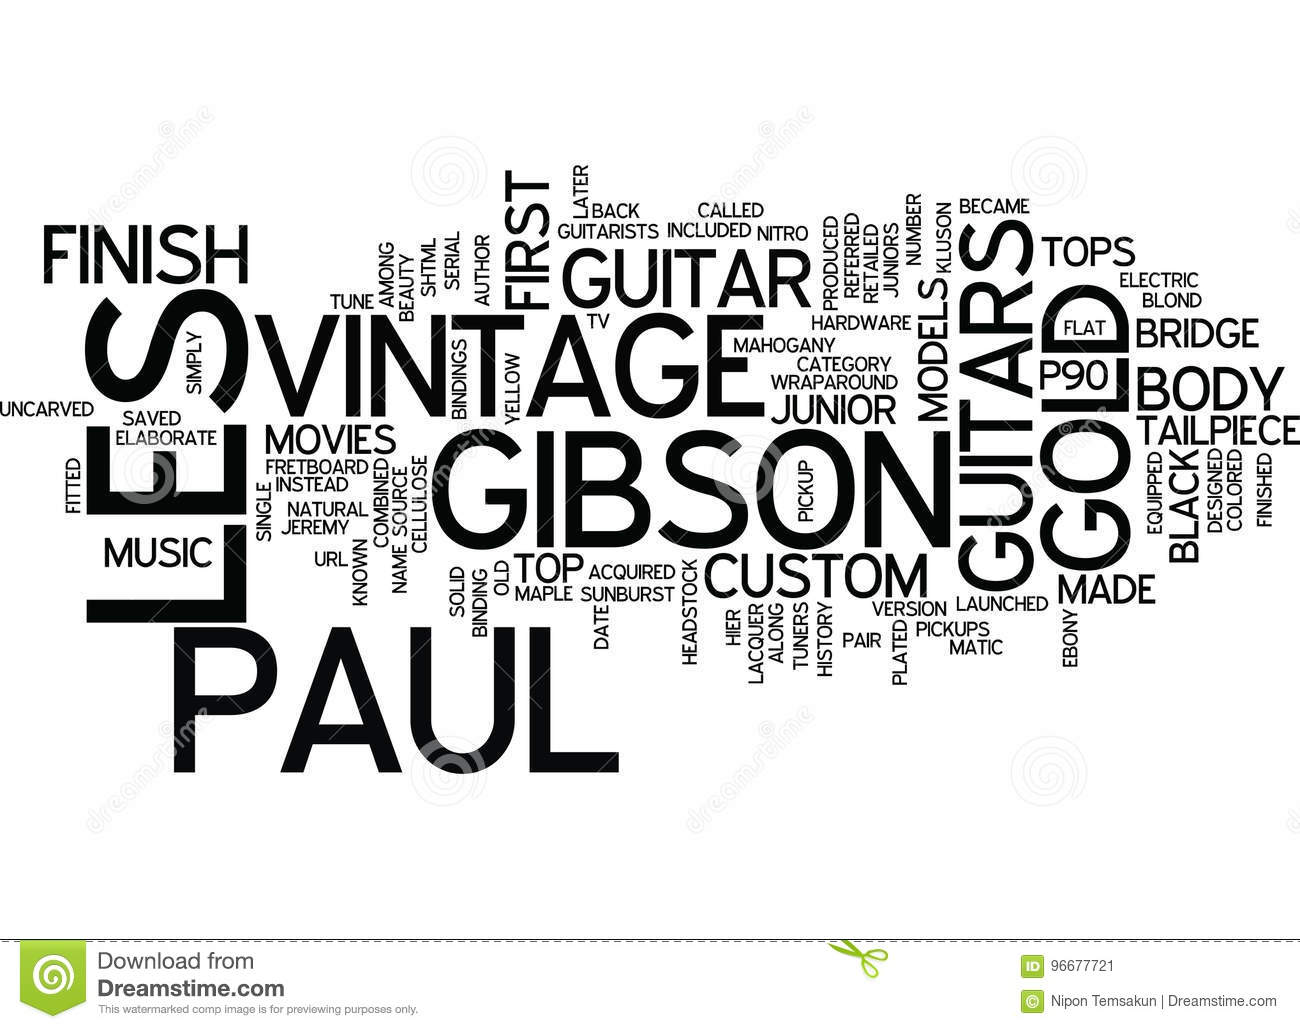 Les Paul Vintage Gibson Guitars A History Text Background